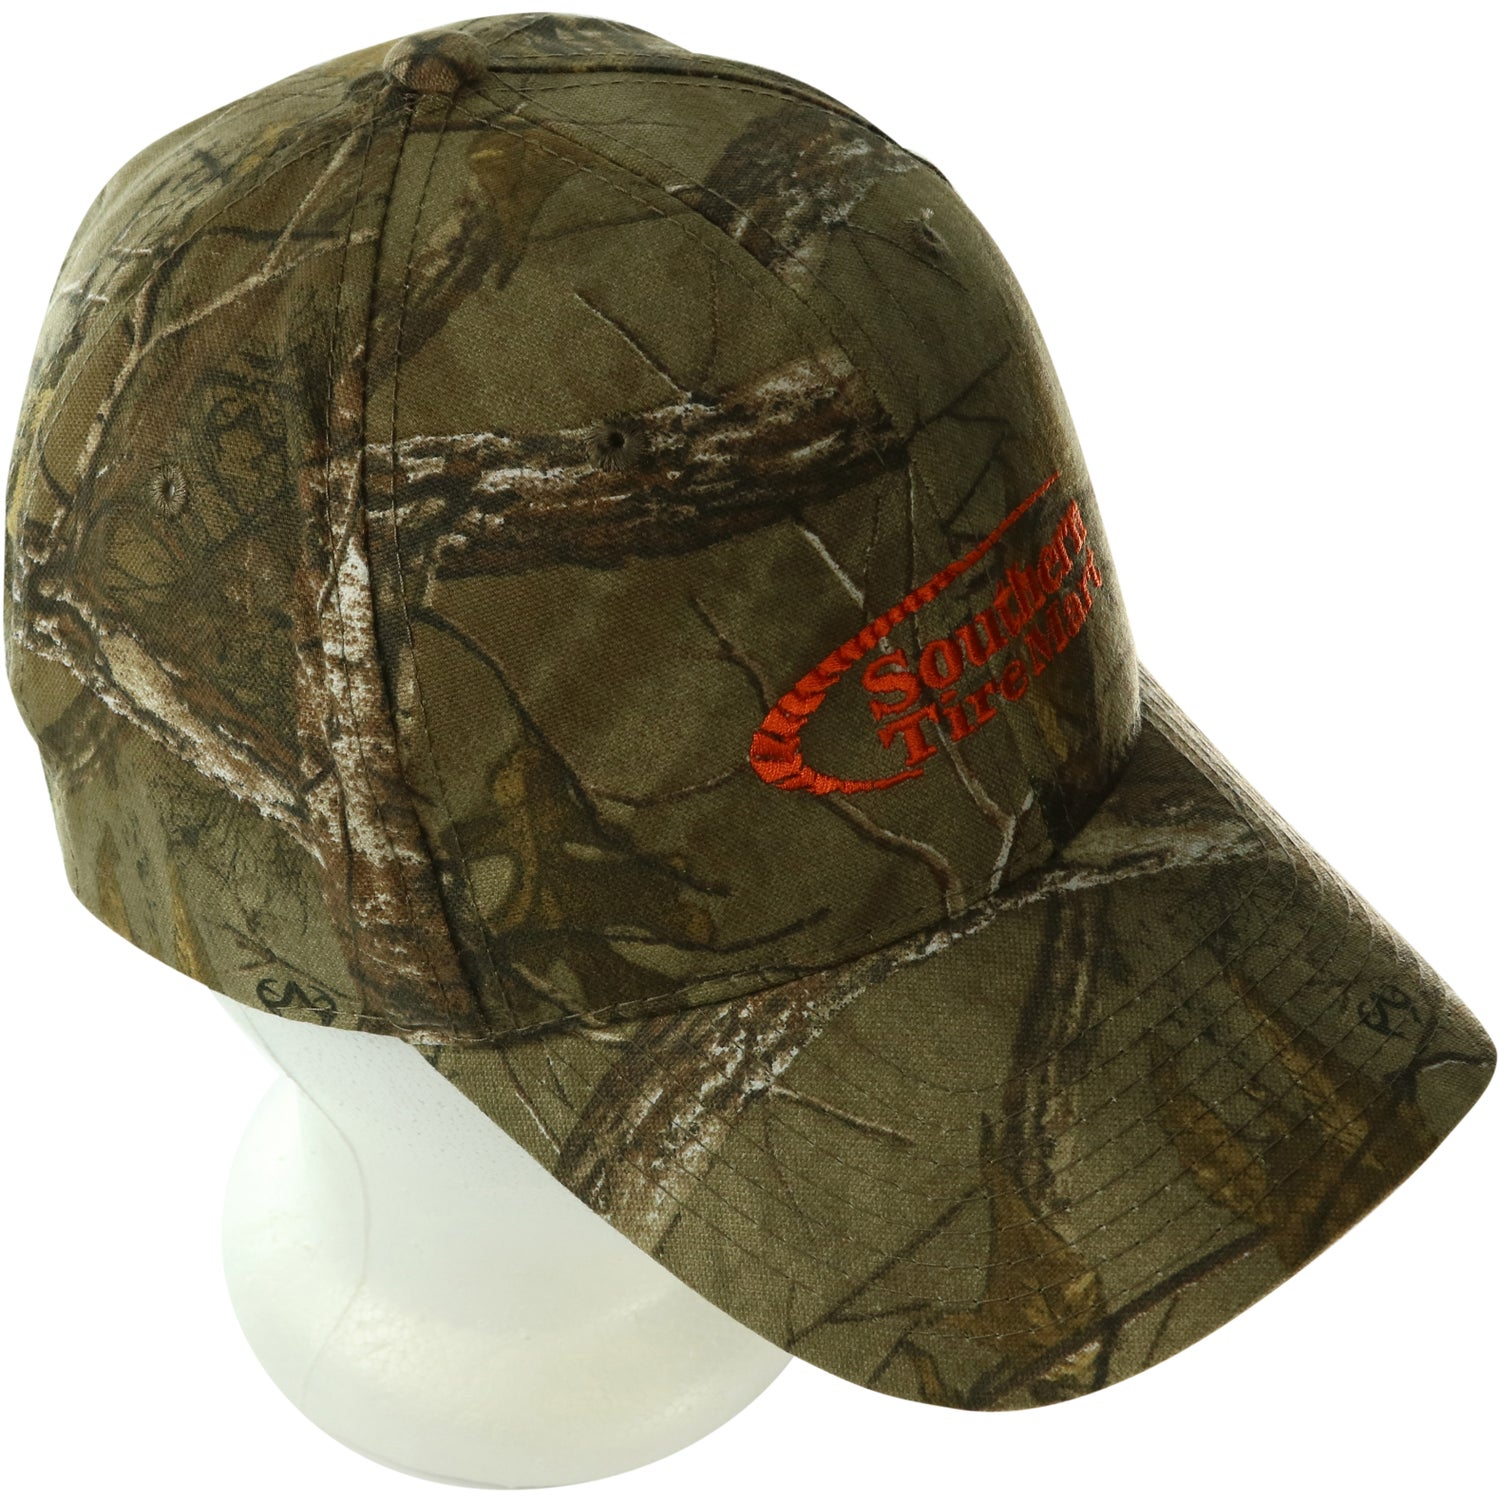 Promotional Hunter s Retreat Camouflage Caps with Custom Logo for  8.87 Ea. d5141e79f942